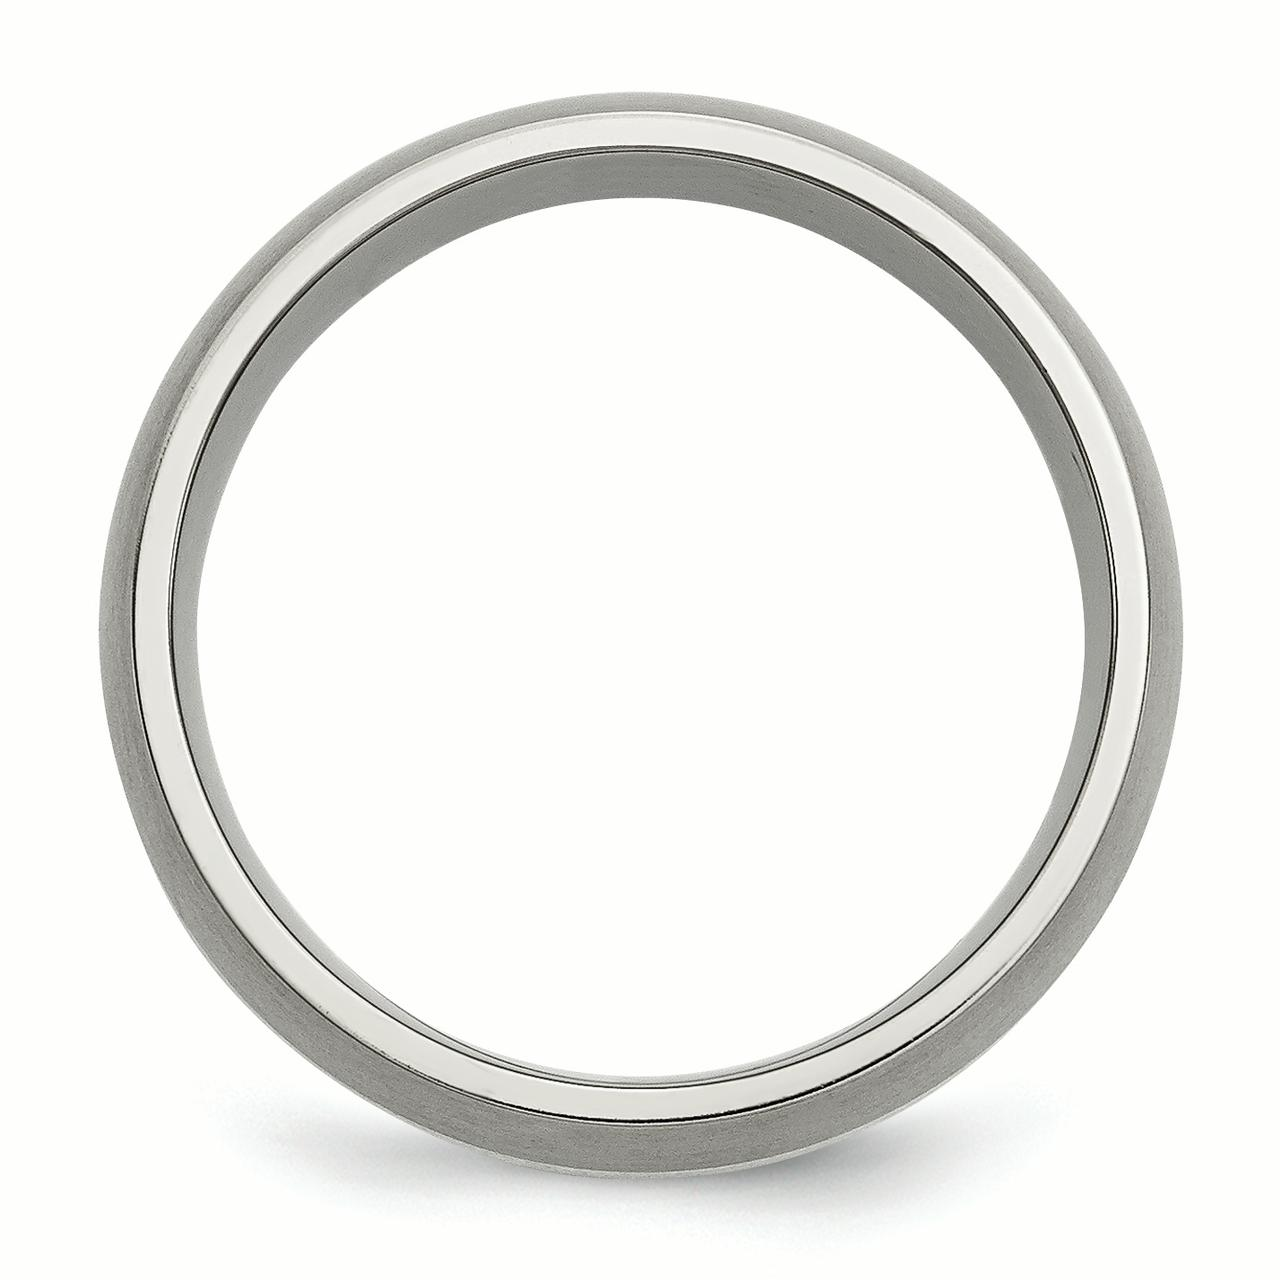 Titanium 925 Sterling Silver Inlay 8mm Brushed Wedding Ring Band Size 7.50 Precious Metal Fine Jewelry Gifts For Women For Her - image 1 of 6